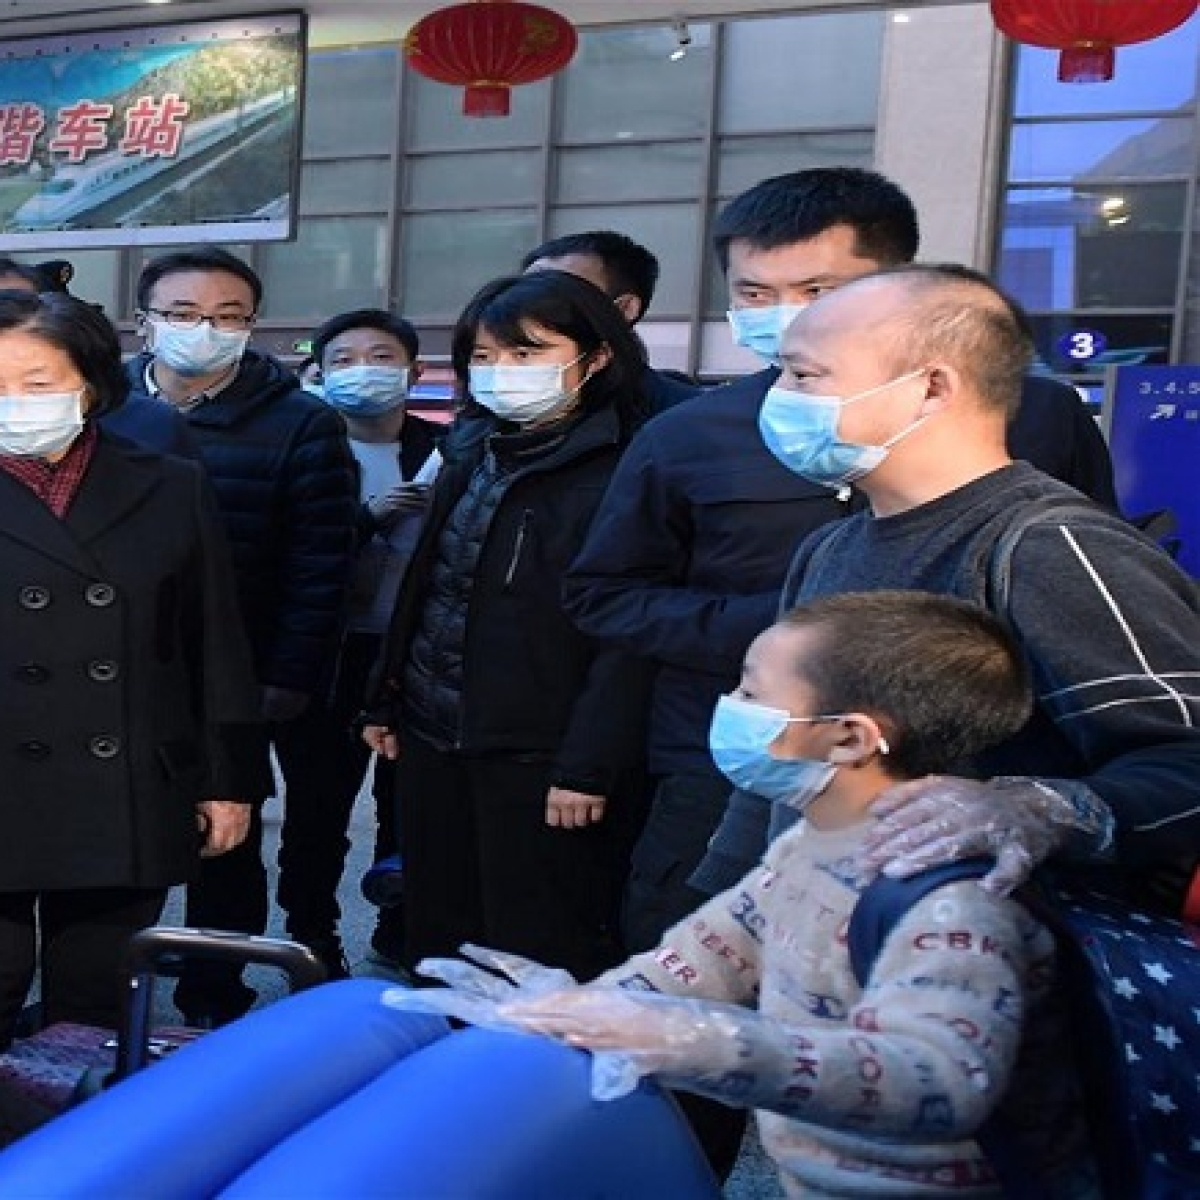 How China's poor handling of the coronavirus pandemic will cost it once normalcy resumes